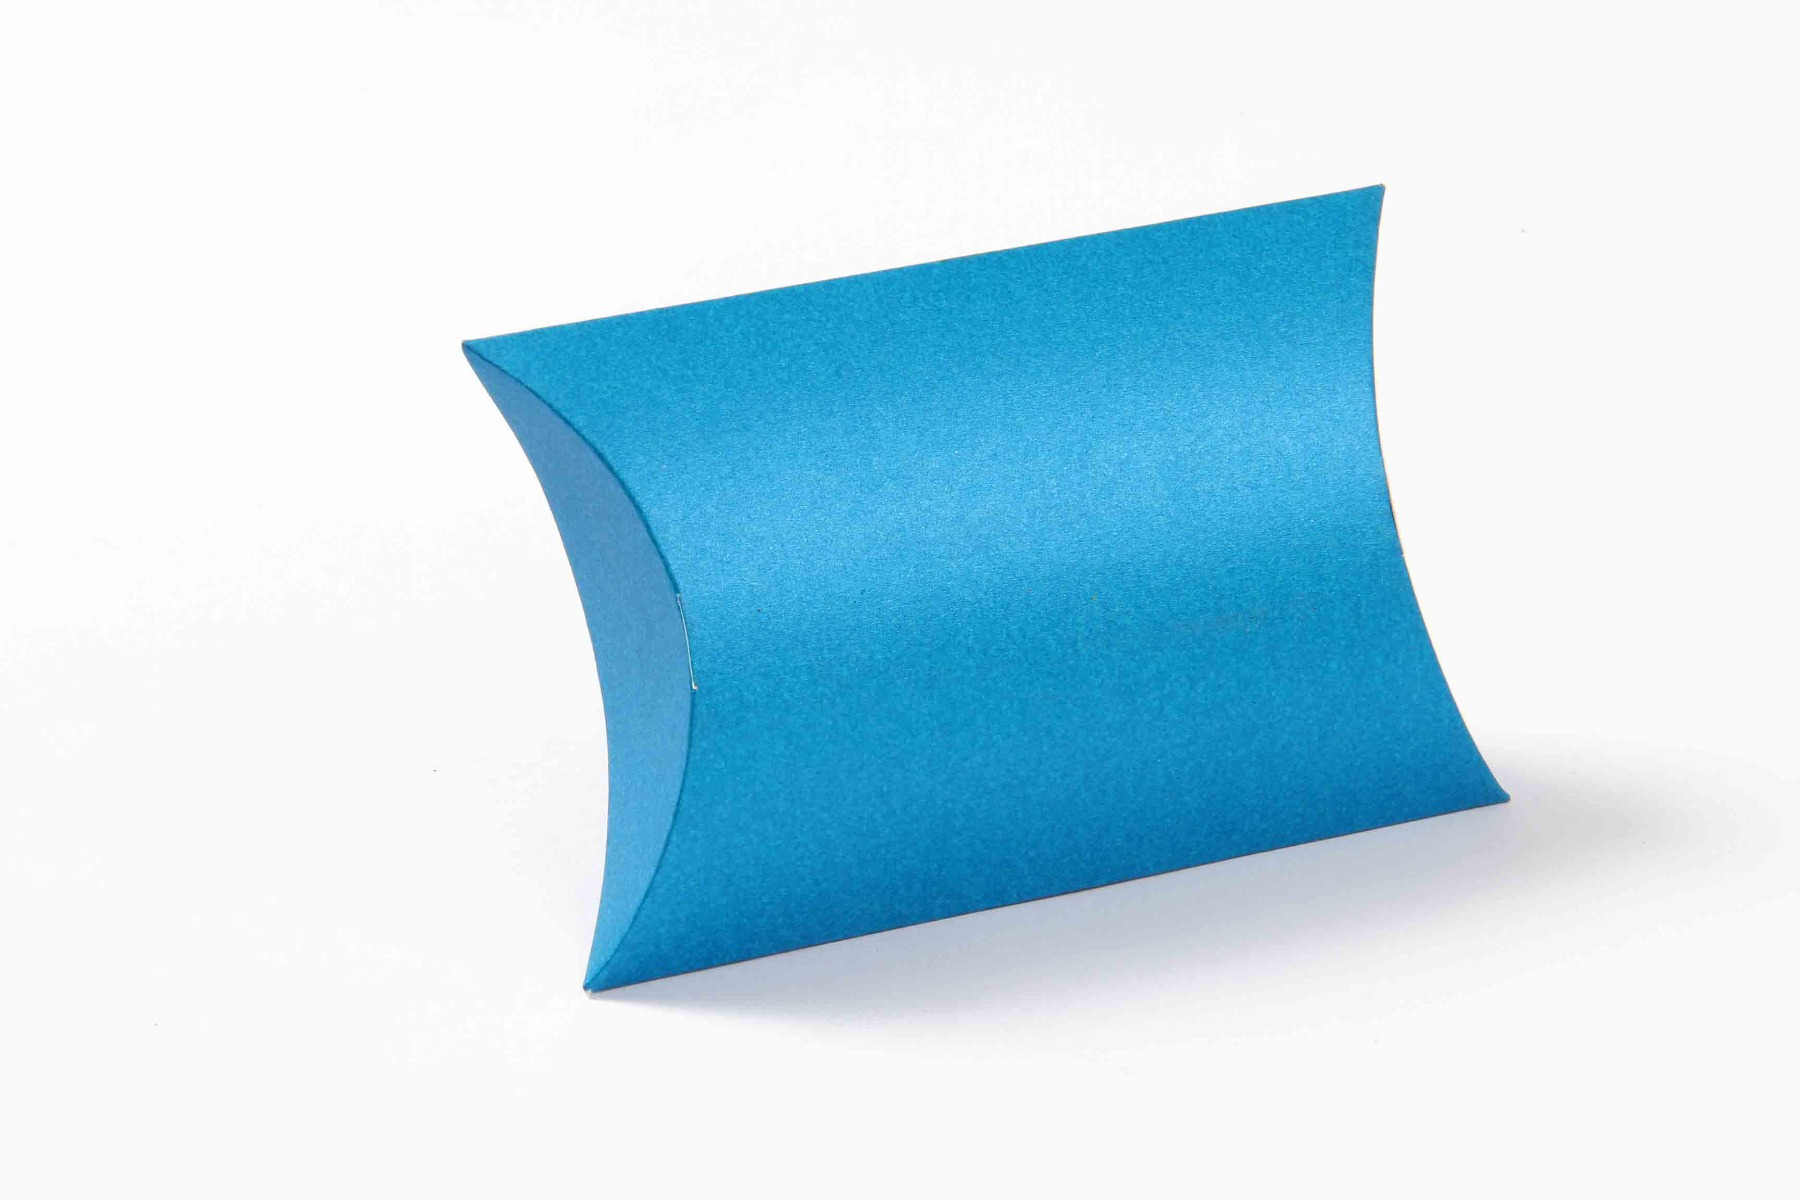 Pillow Favor Box No 9 - Firoze Blue-8660